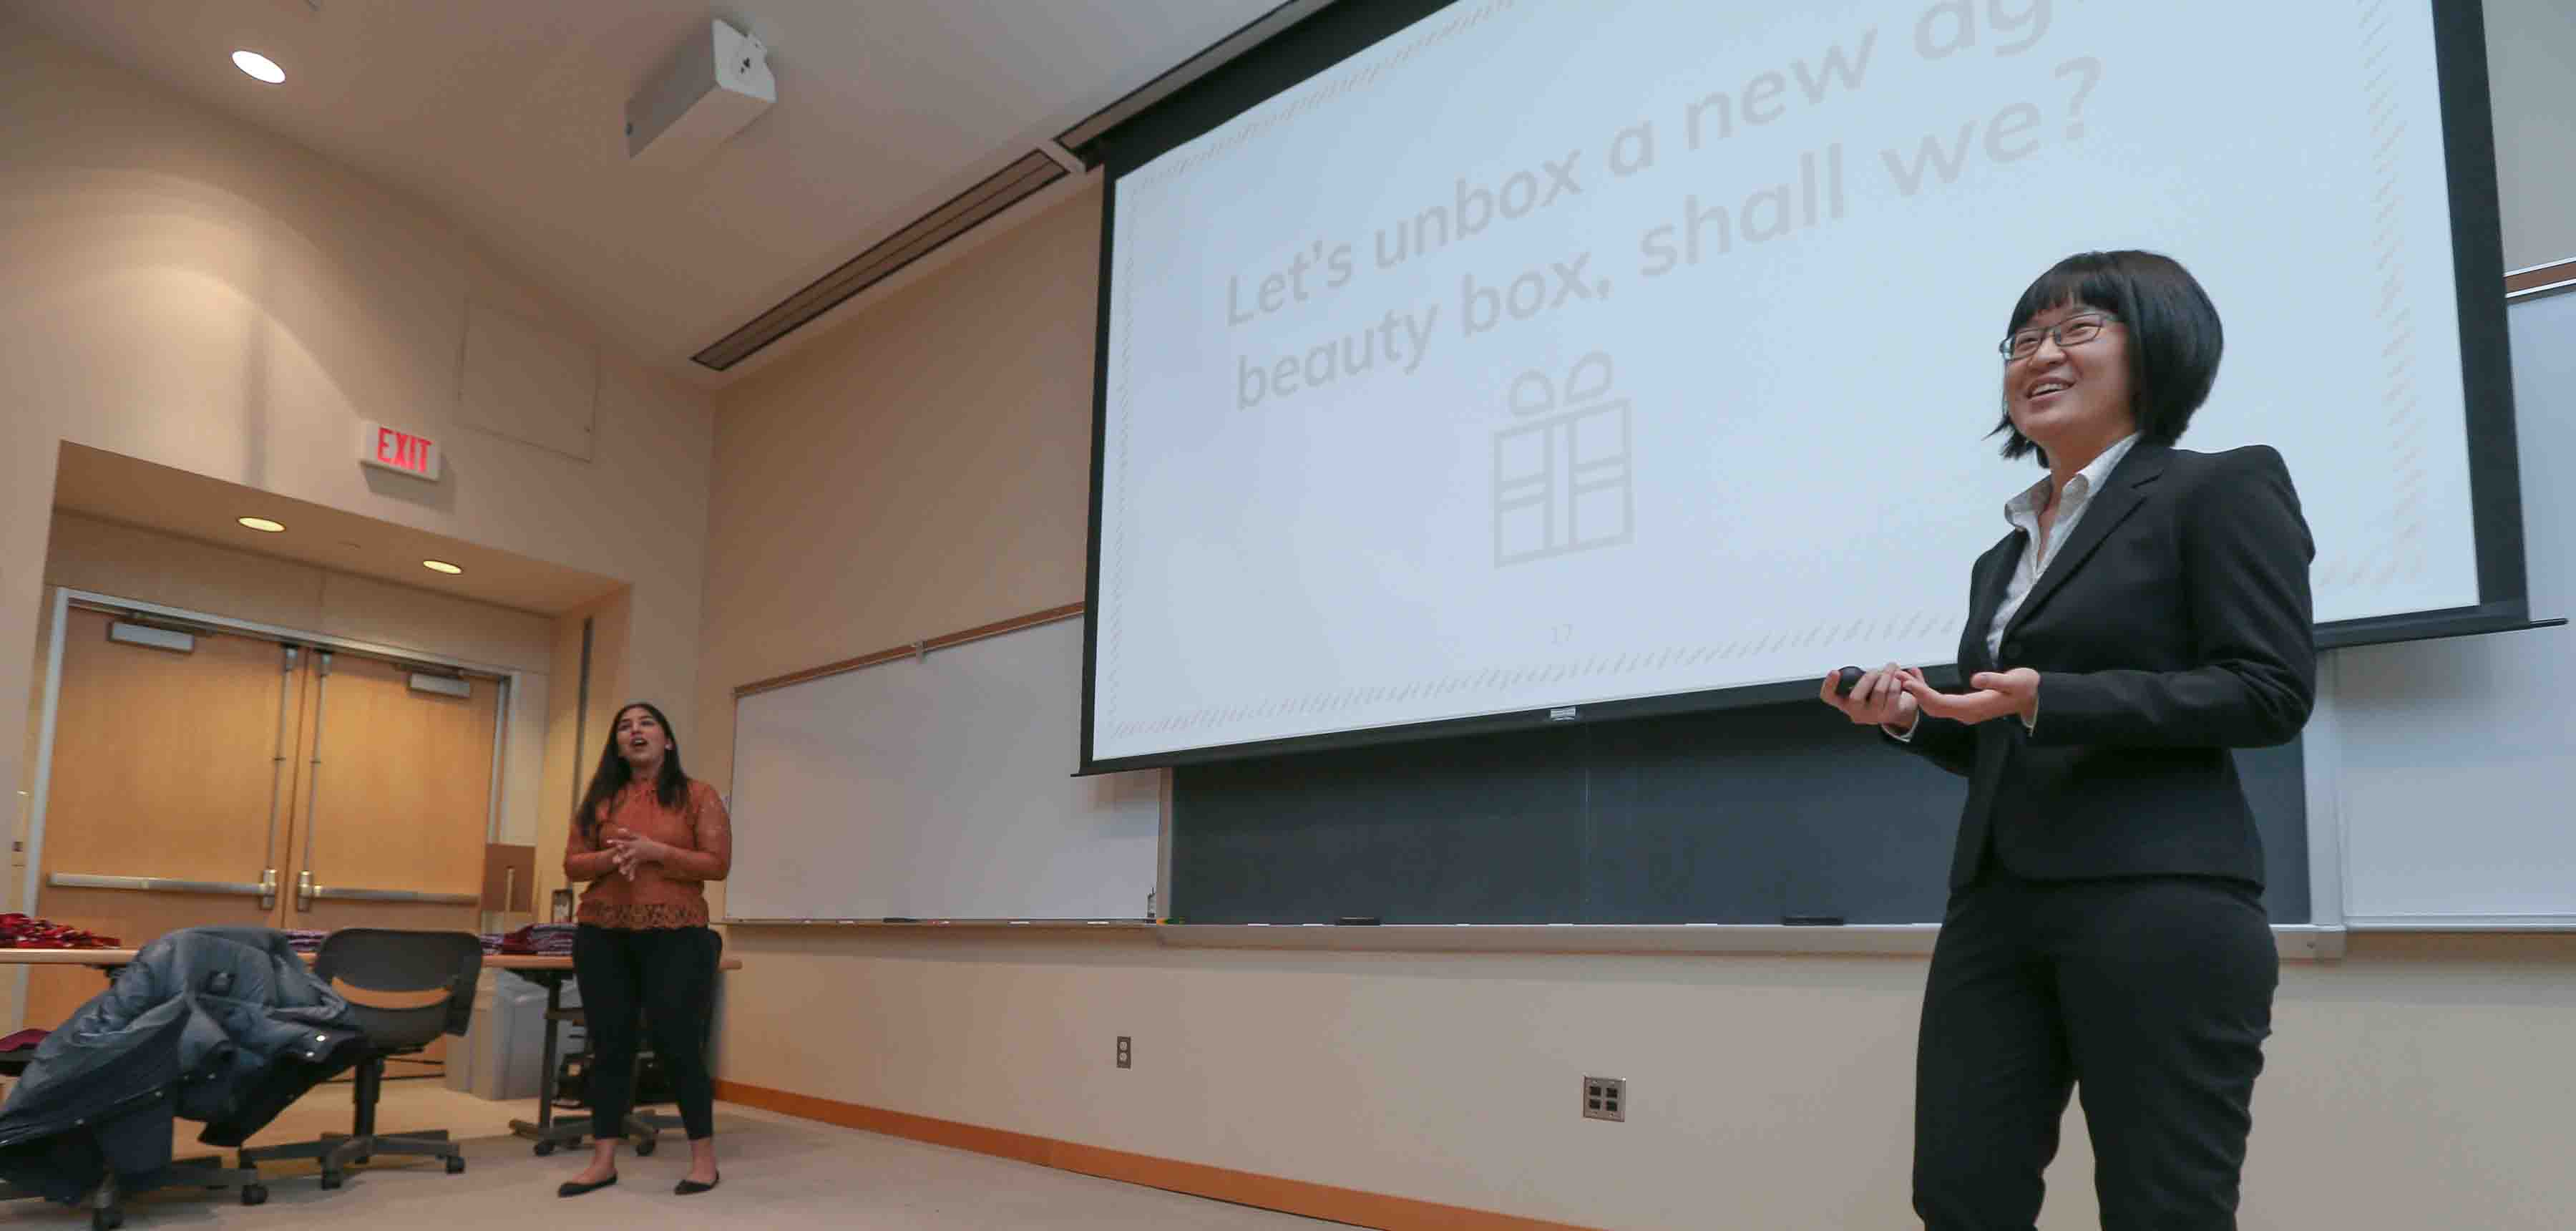 Rukhmitha Shridhar '18 and Danhui Zhang '18 present their business plan.